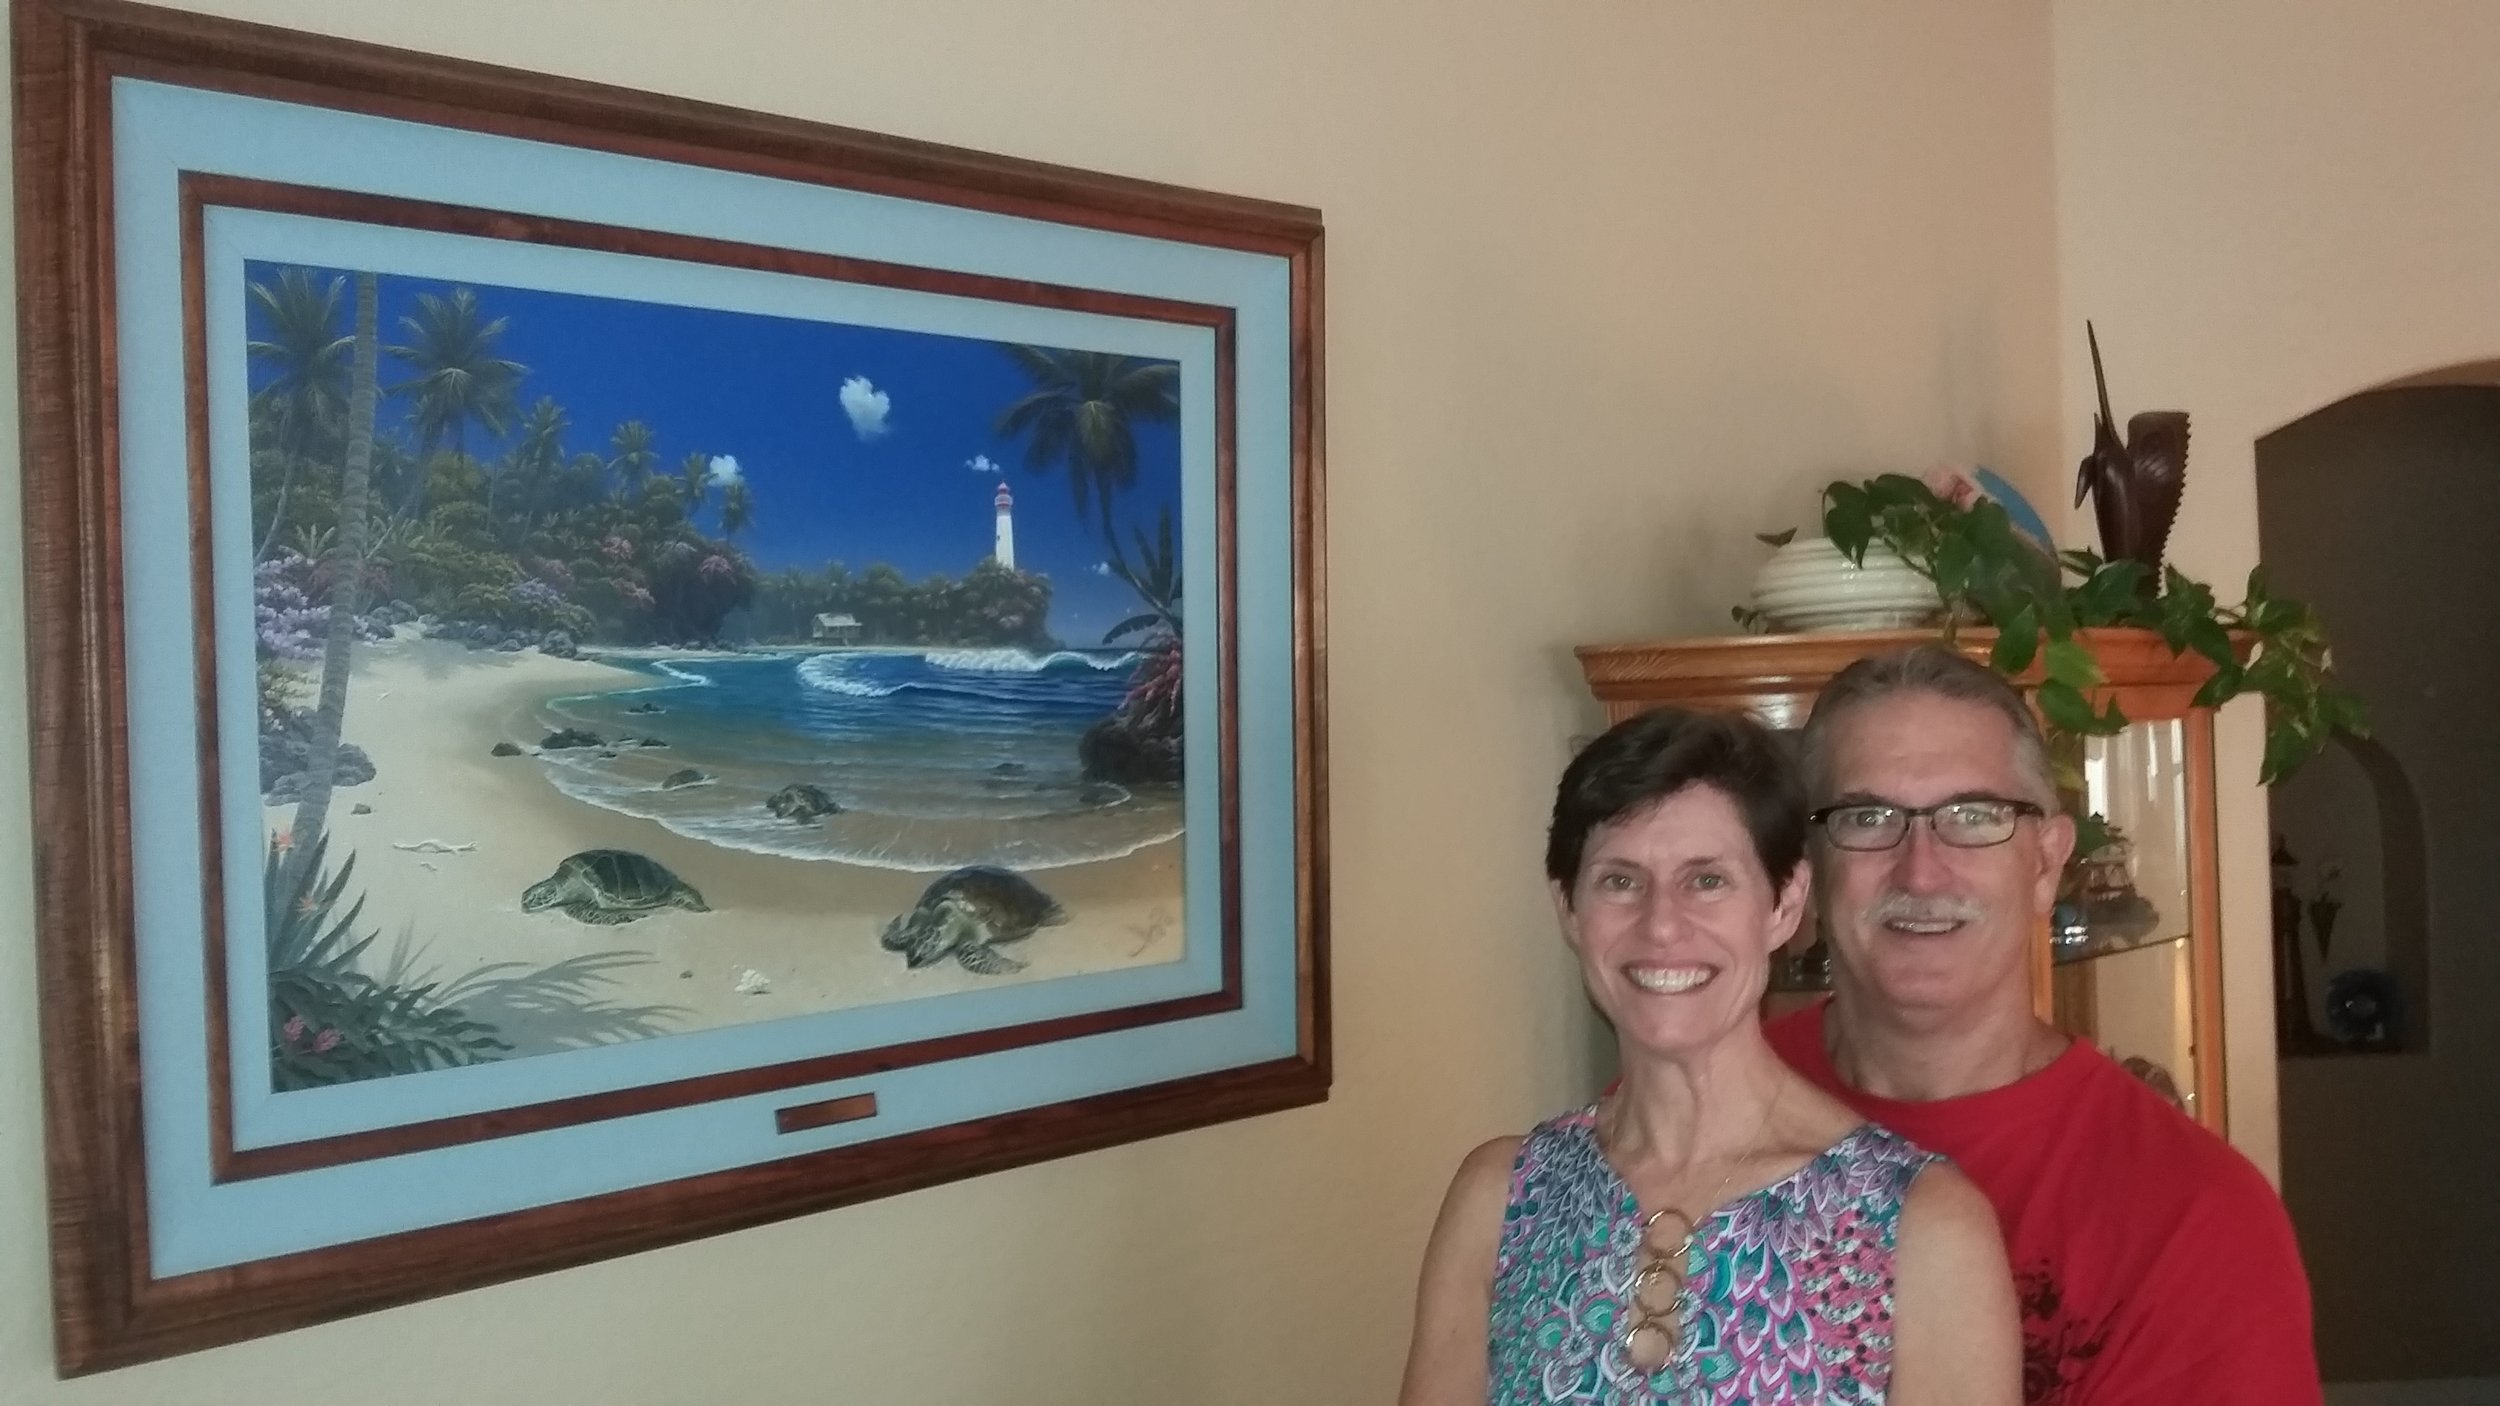 "Ron & Leanne Brewster with ""Turtle Bay""    We were first introduced to Al Hogue's work on a trip up the west coast in 2007. We fell in love with Tranquility Bay at a shop in Grants Pass Oregon but were unable to purchase the original at that time. We never forgot how much we really like the way he captured the beauty of the Hawaiian Islands. Ron then started a friendship with Al who was living in Hawaii at the time. We love anything to do with sea turtles and purchased from him a piece named ""Turtle Adventure"". The artwork is beautiful with the rich colors of the Hawaiian Islands and exquisite frame work of Koa wood. As the years past, Ron kept in touch with Al and exchanged news of our families. In 2018 we decided to have Al do a showcase piece for our home with our beloved sea turtles. He and Ron worked together to create the original, pictured here, ""Turtle Bay"". His use of color, light and the way he captures the feeling of the islands are what we love about his work. We will enjoy this truly magnificent piece of art for years to come.      R & L Brewster"